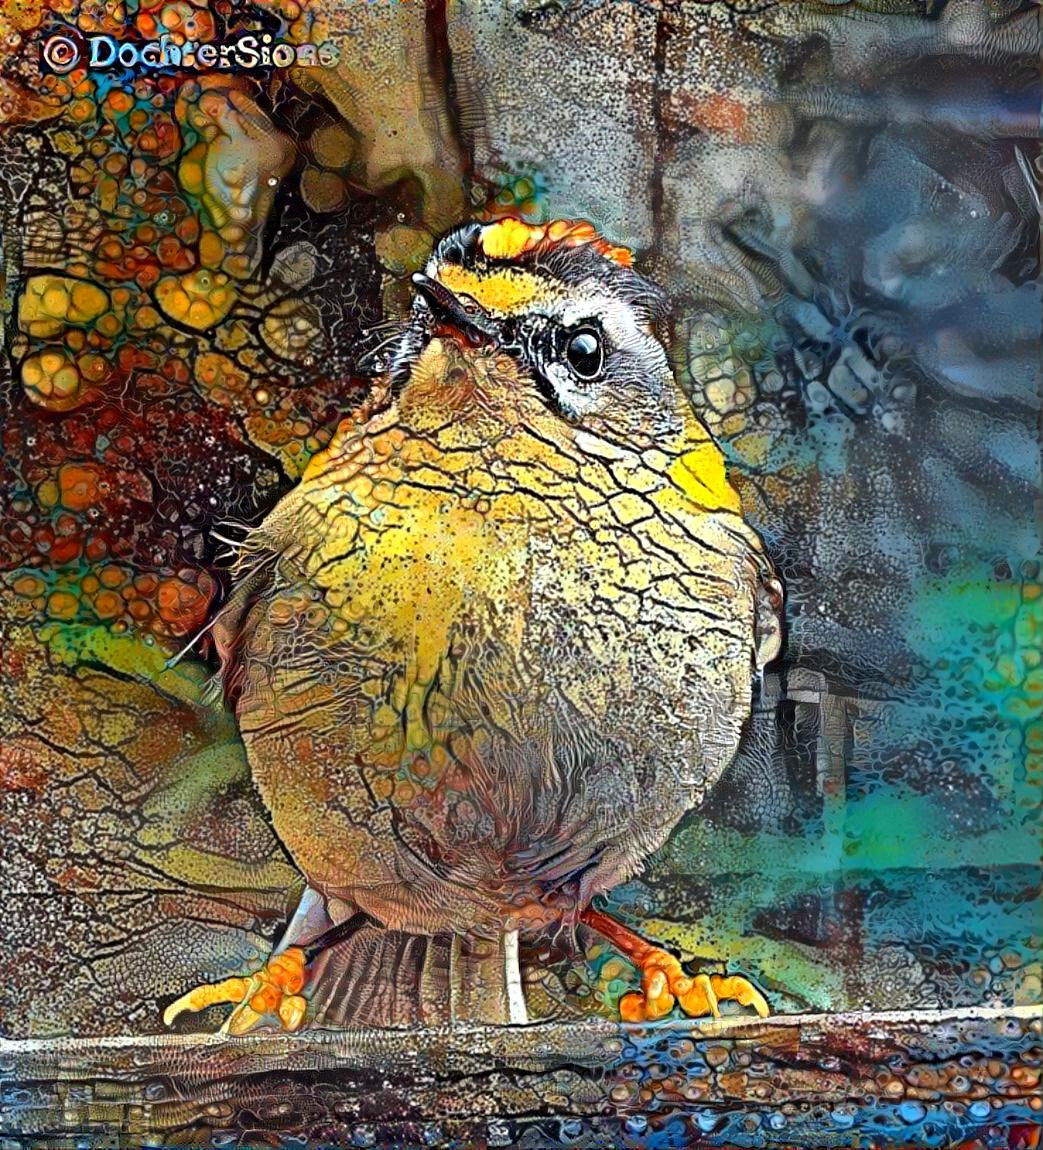 Common firecrest by dochtersions